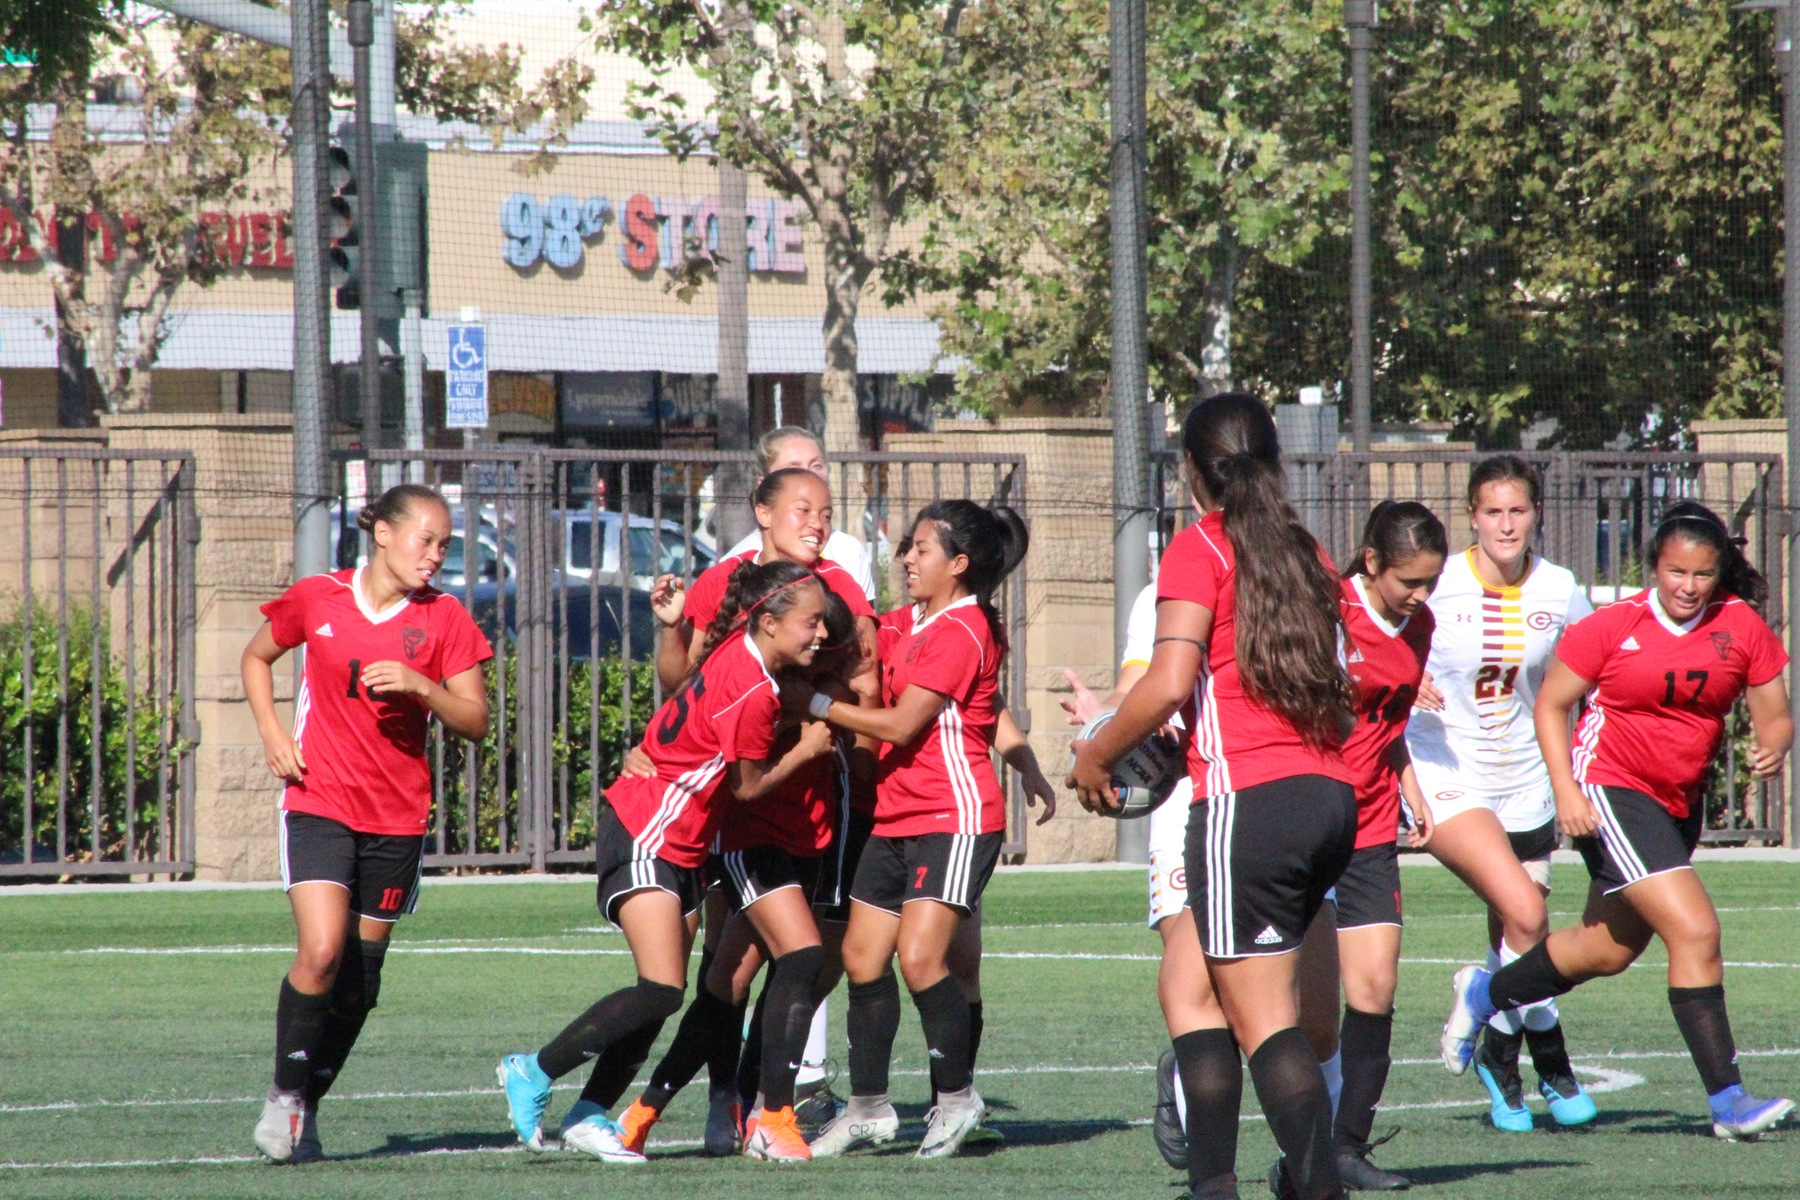 Wood's Hat Trick Propels Santa Ana to 4-2 Win Over Saddleback